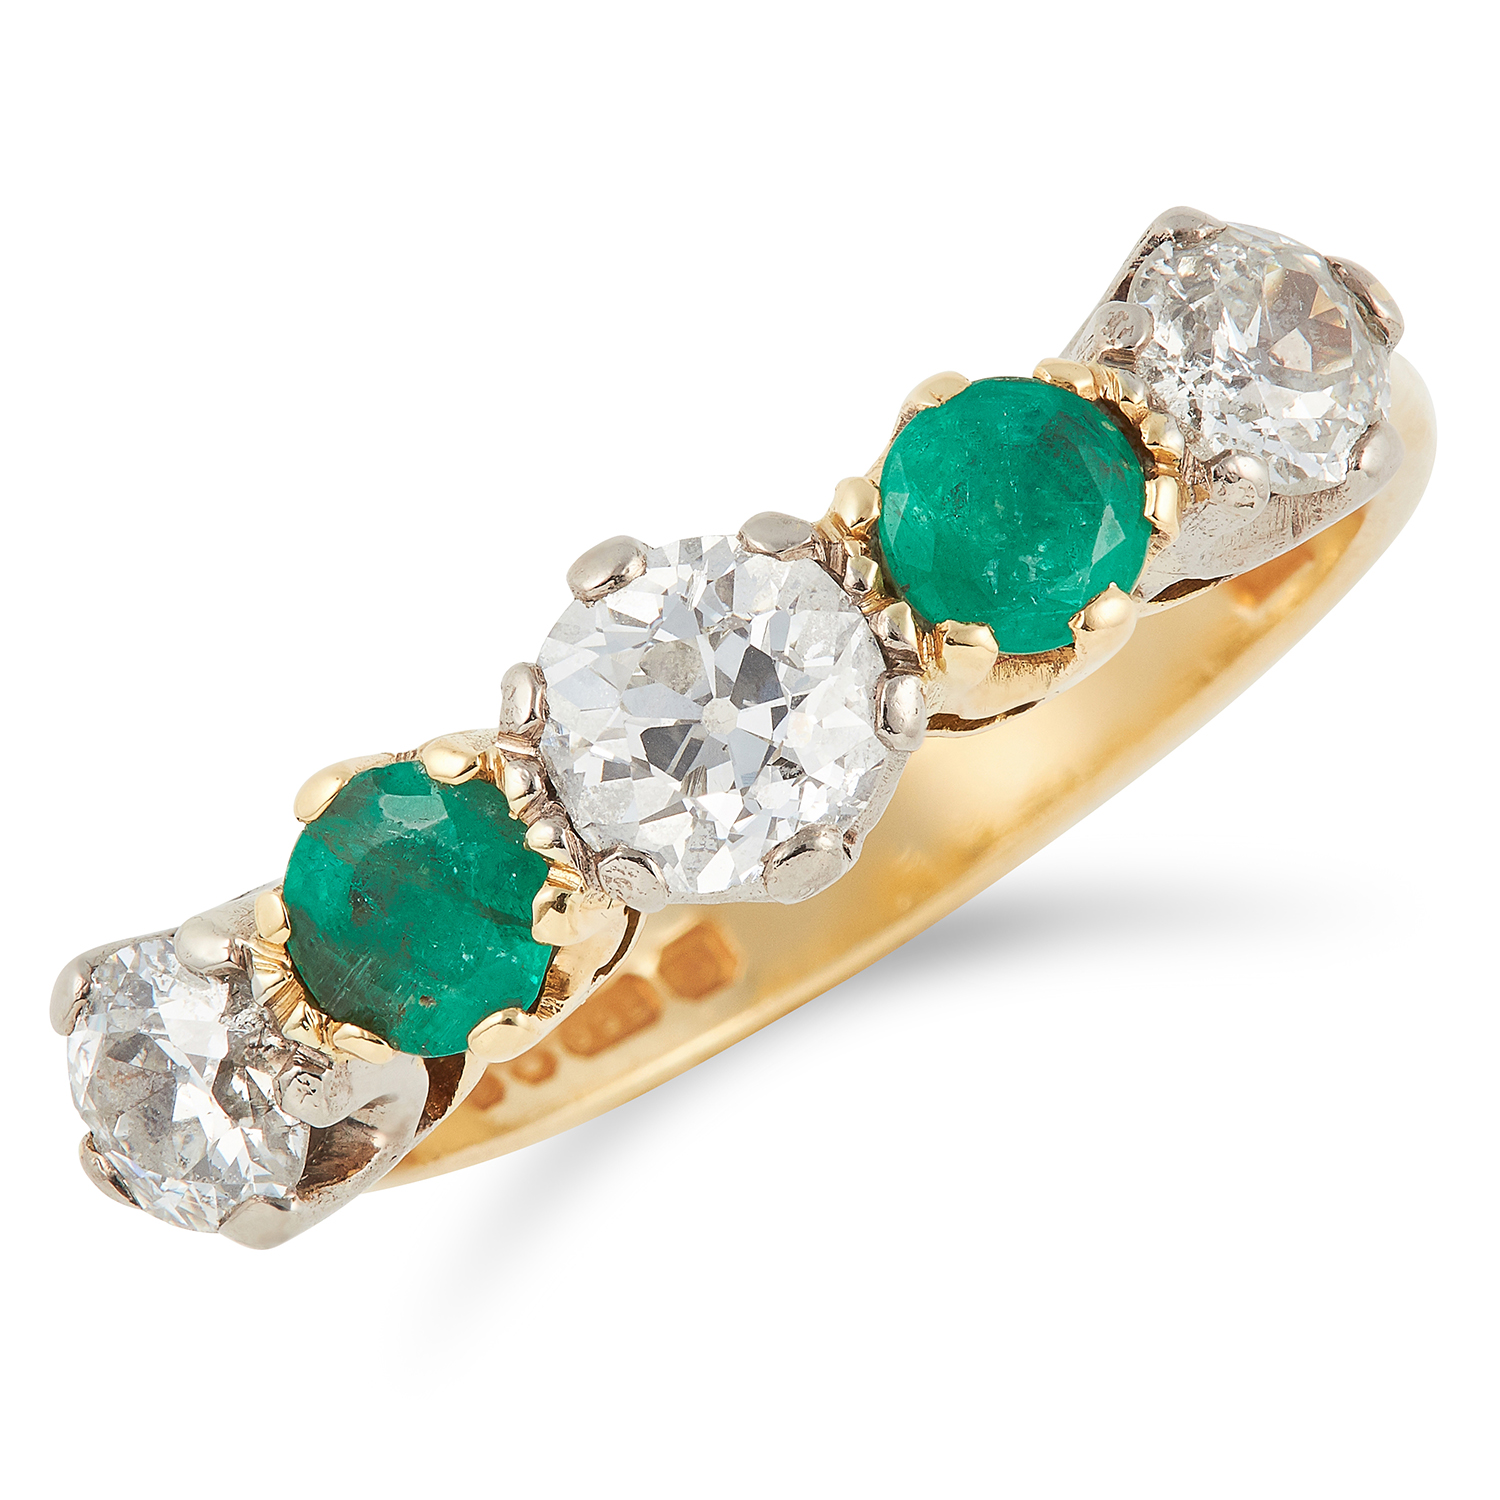 DIAMOND AND EMERALD FIVE STONE RING set with round cut diamonds and round cut emeralds, size N /